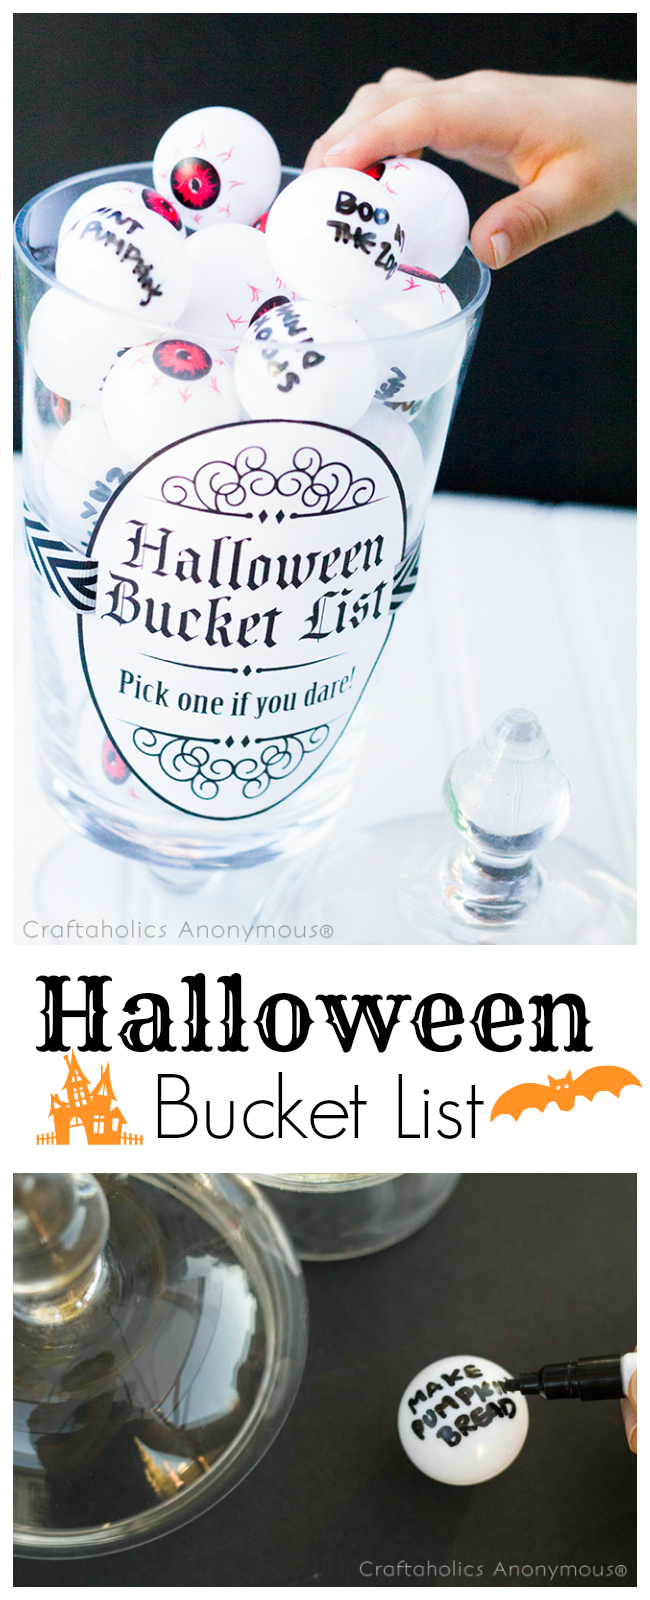 Love this idea! Halloween Bucket list for kids. Great for making fun fall memories!